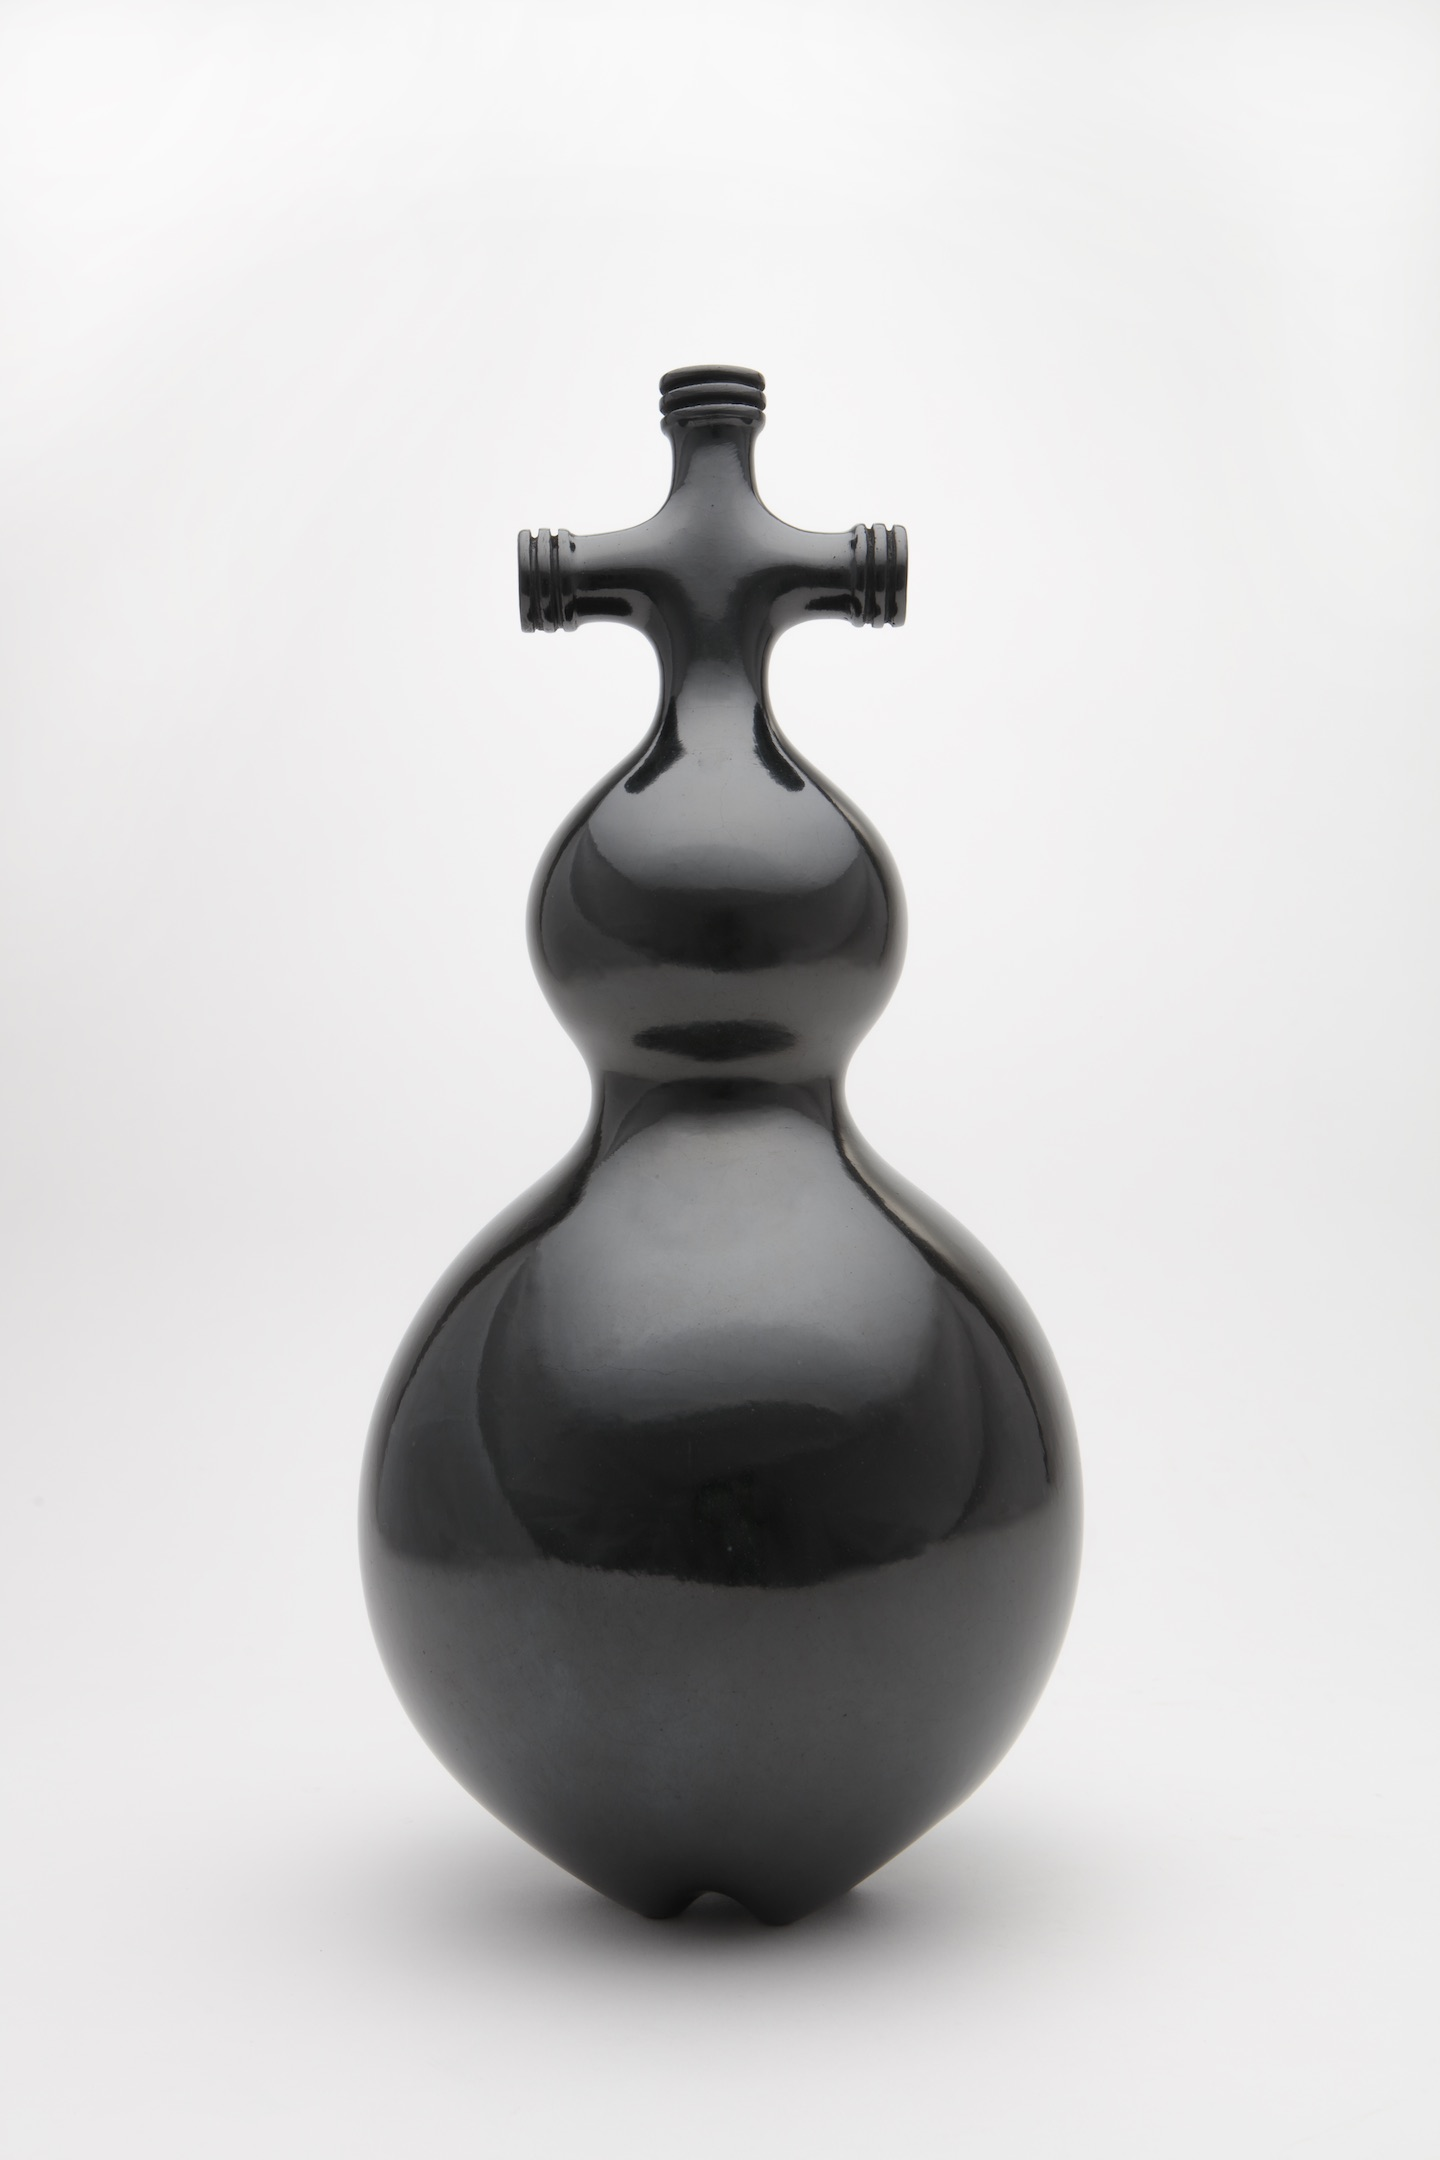 Black, shiny sculpture made of clay features a cross-like shape on top of two bulbs of increasing size.